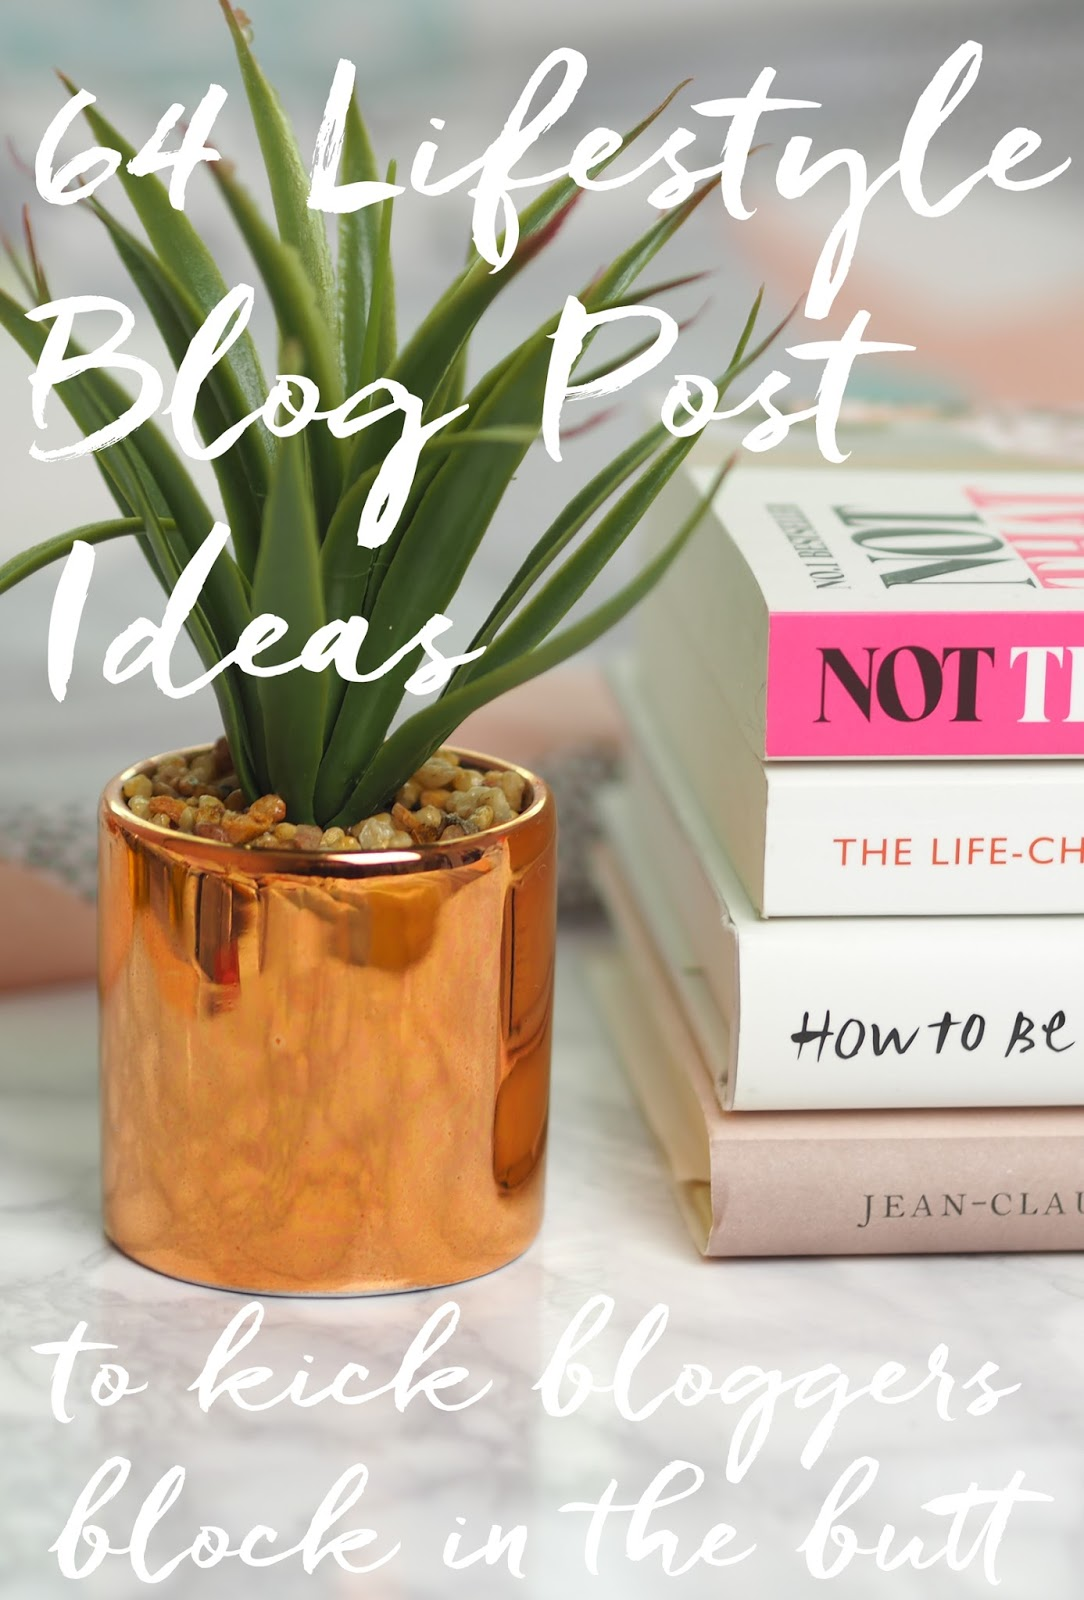 64 Lifestyle Blog Post Ideas